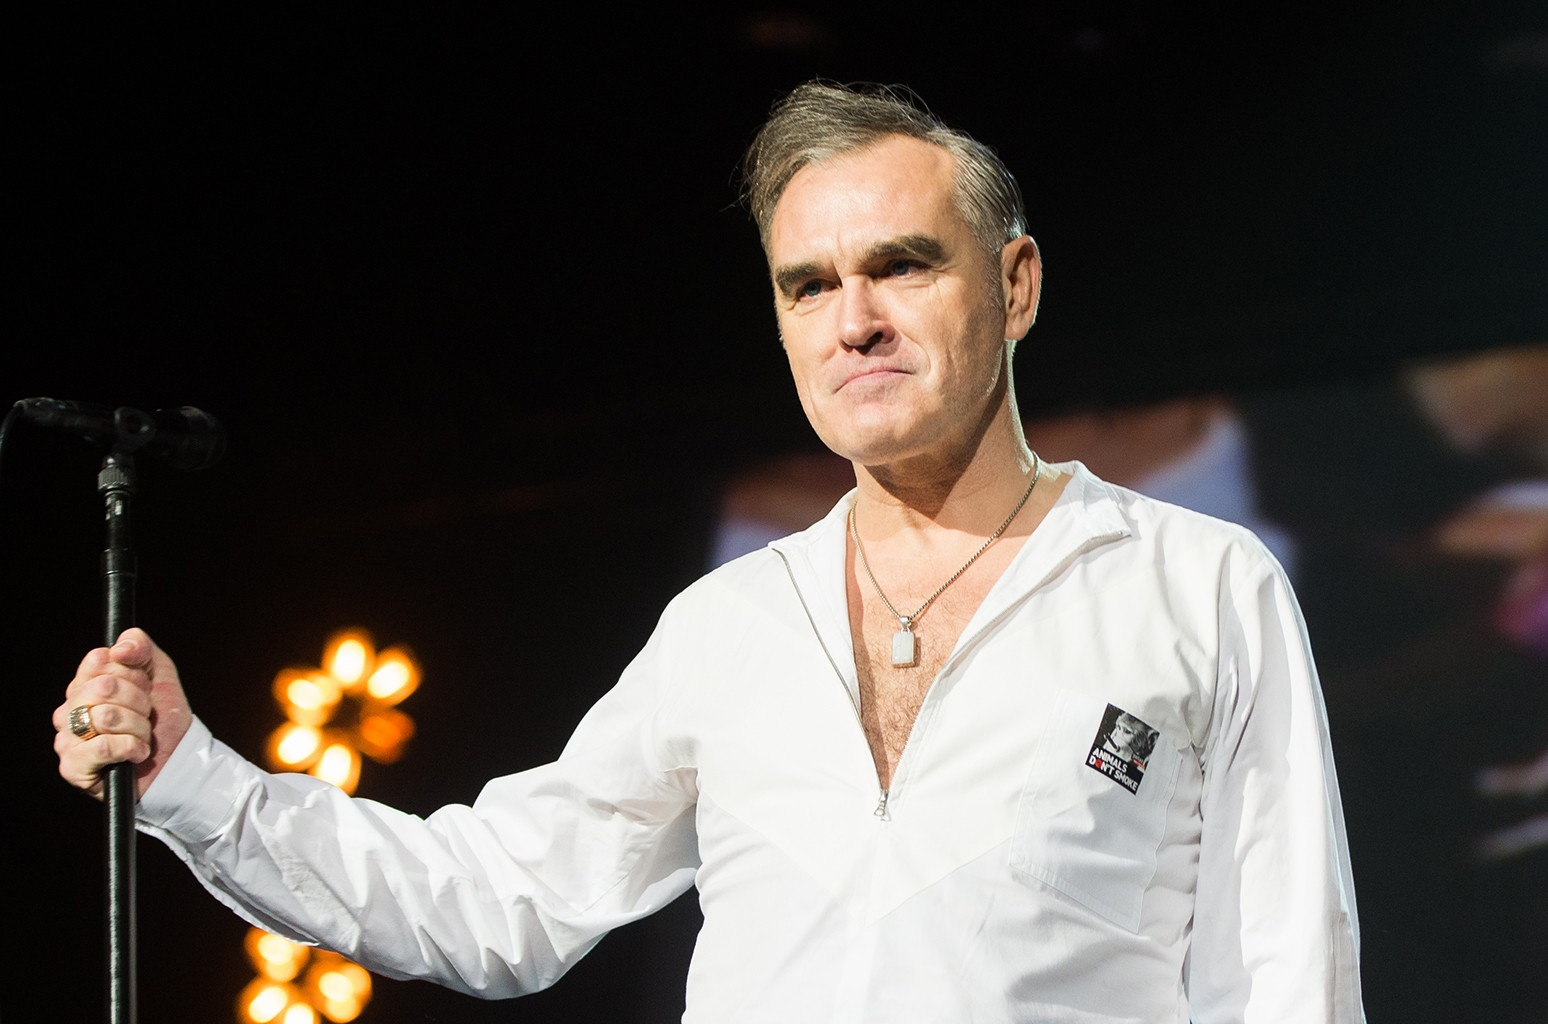 Morrissey performs live on stage at O2 Arena on November 29, 2014 in London, United Kingdom  (Photo by Samir Hussein/Redferns via Getty Images)